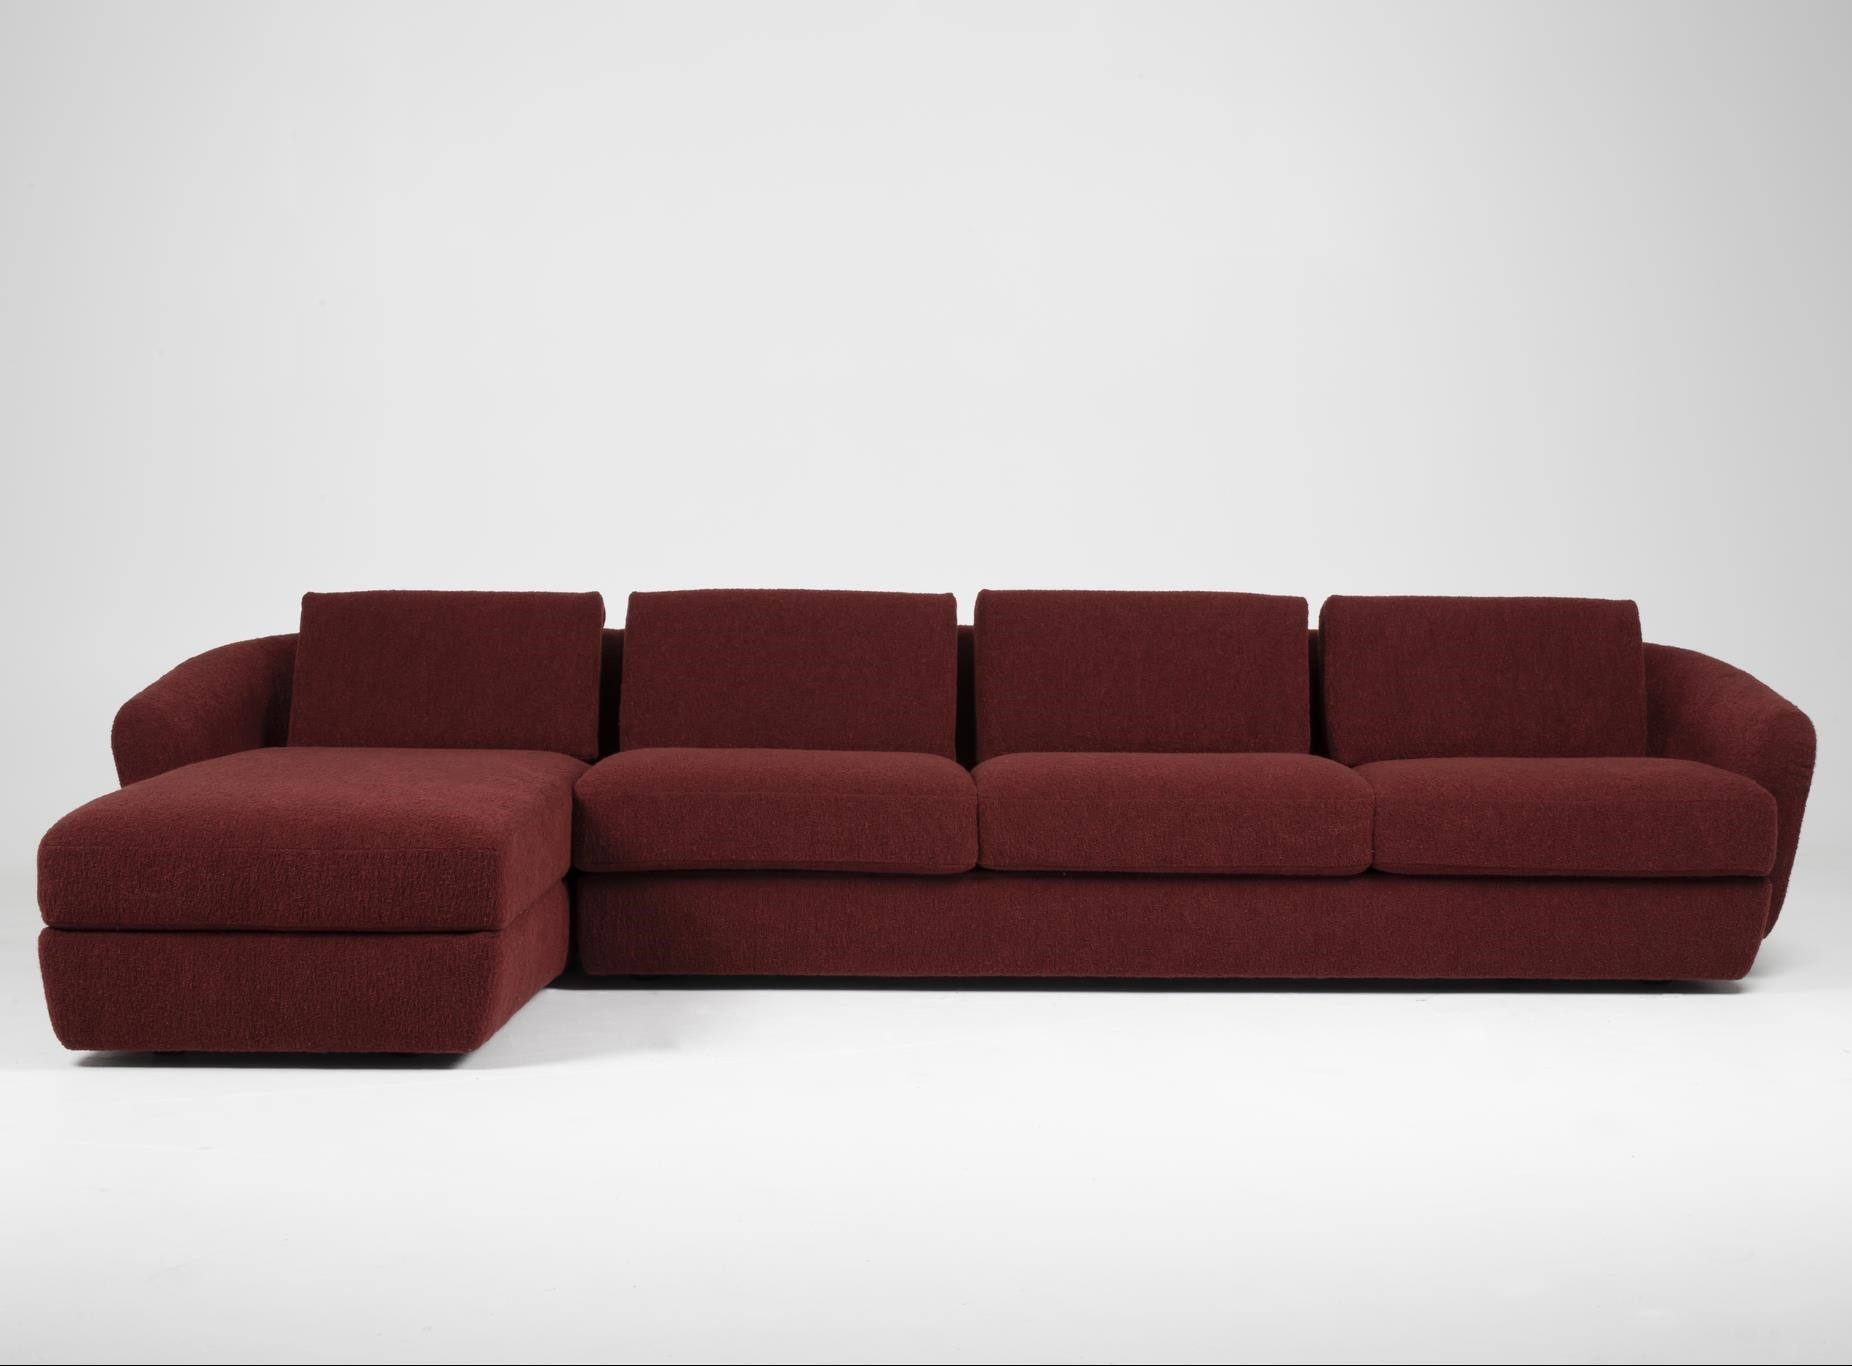 Sadona 4-Seat Sofa with Chaise by American Leather at Baer's Furniture